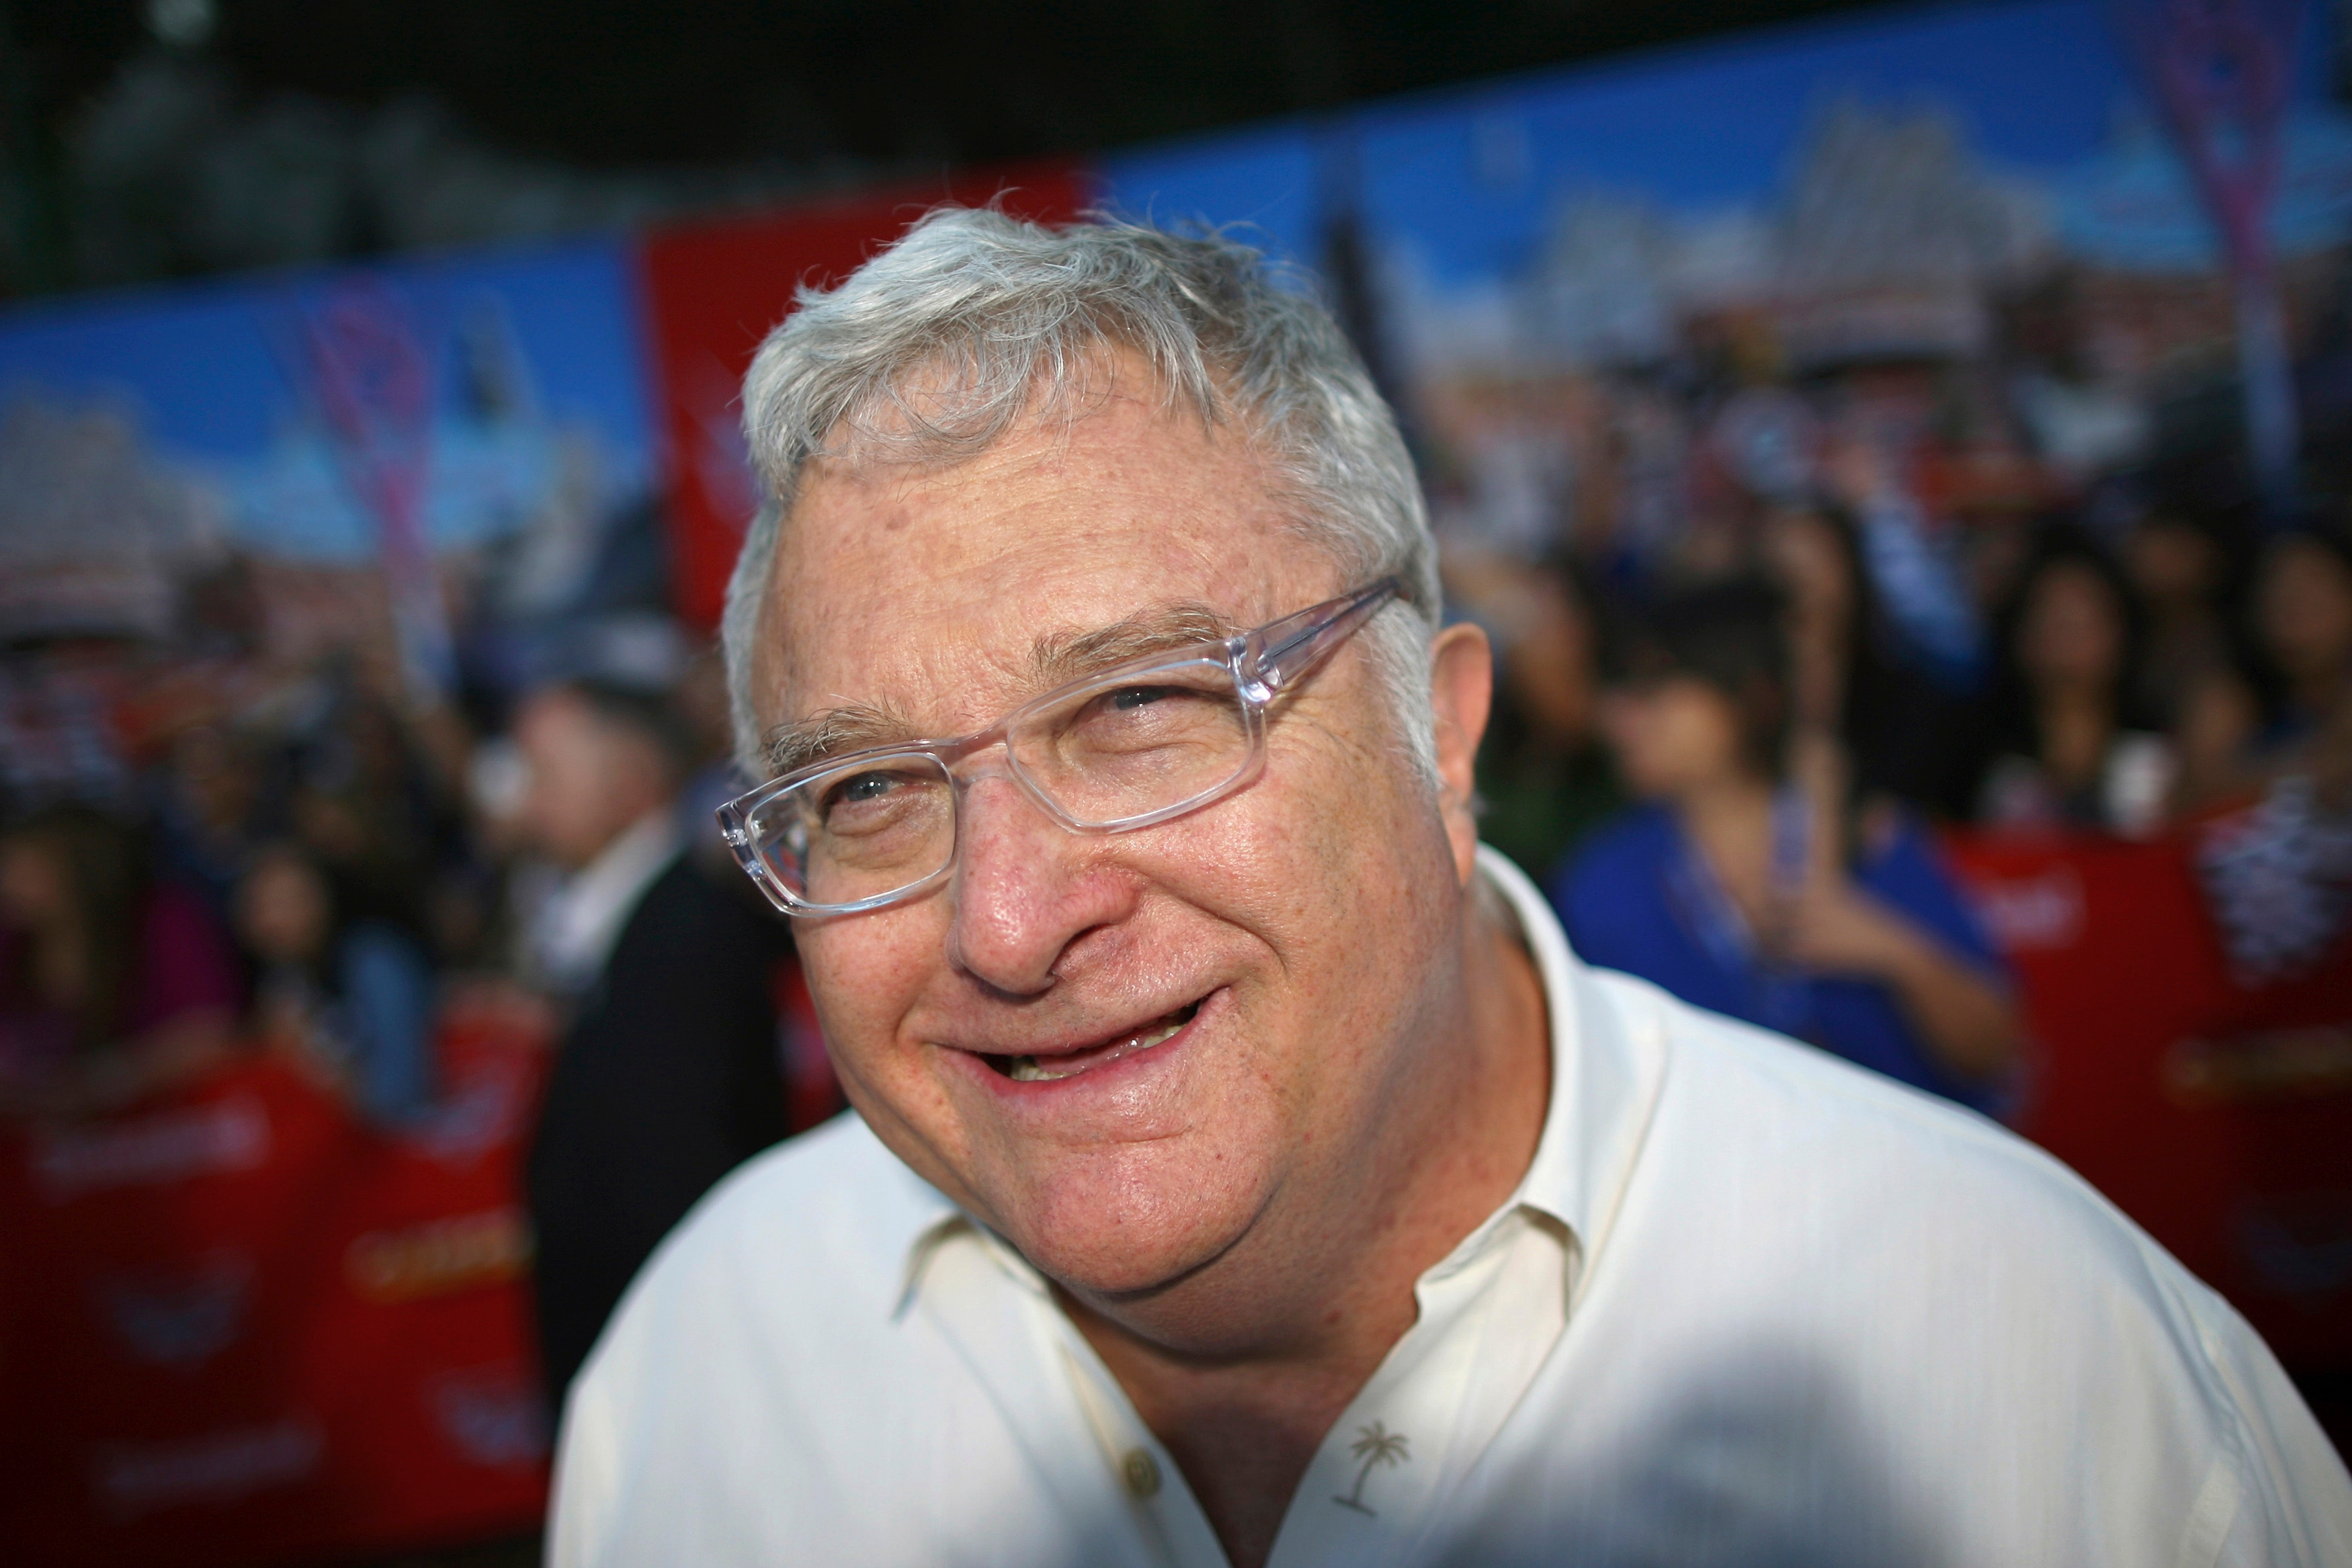 randy newman – something special